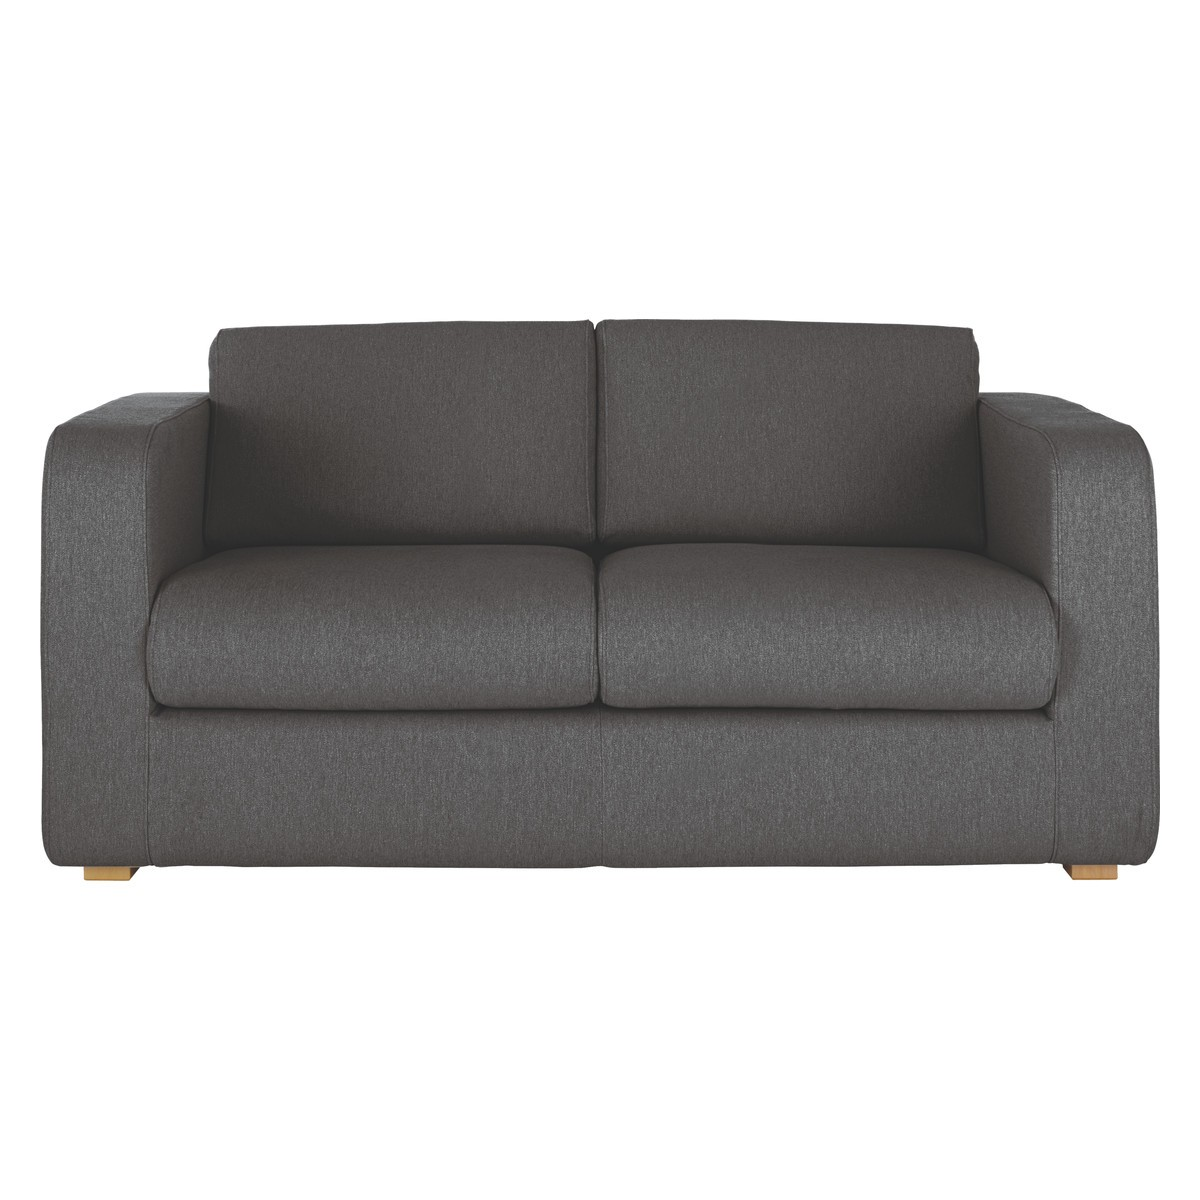 2 seater sofa hover to zoom CWTPARZ